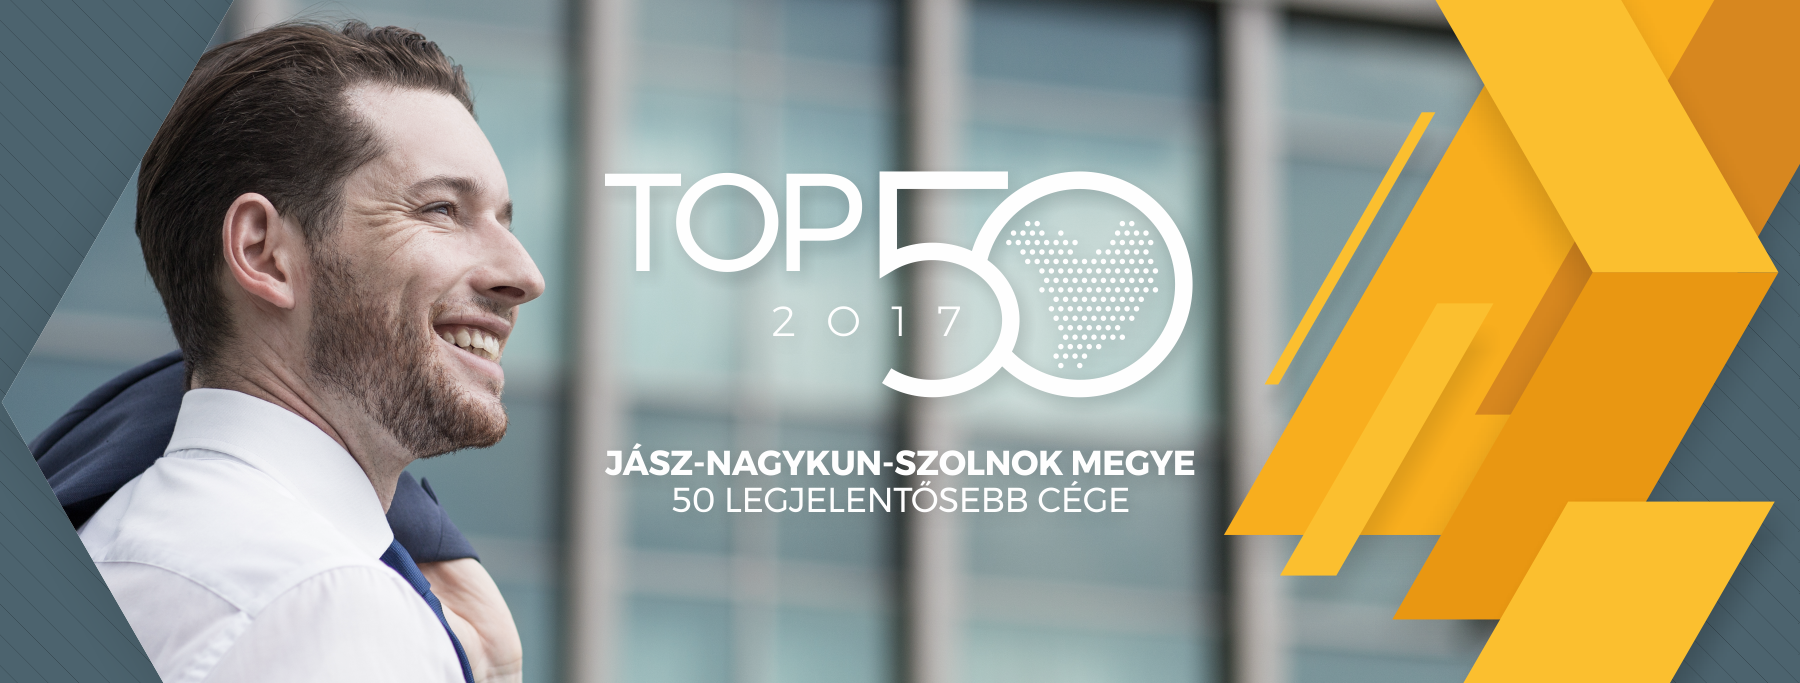 facebook_cover_top50